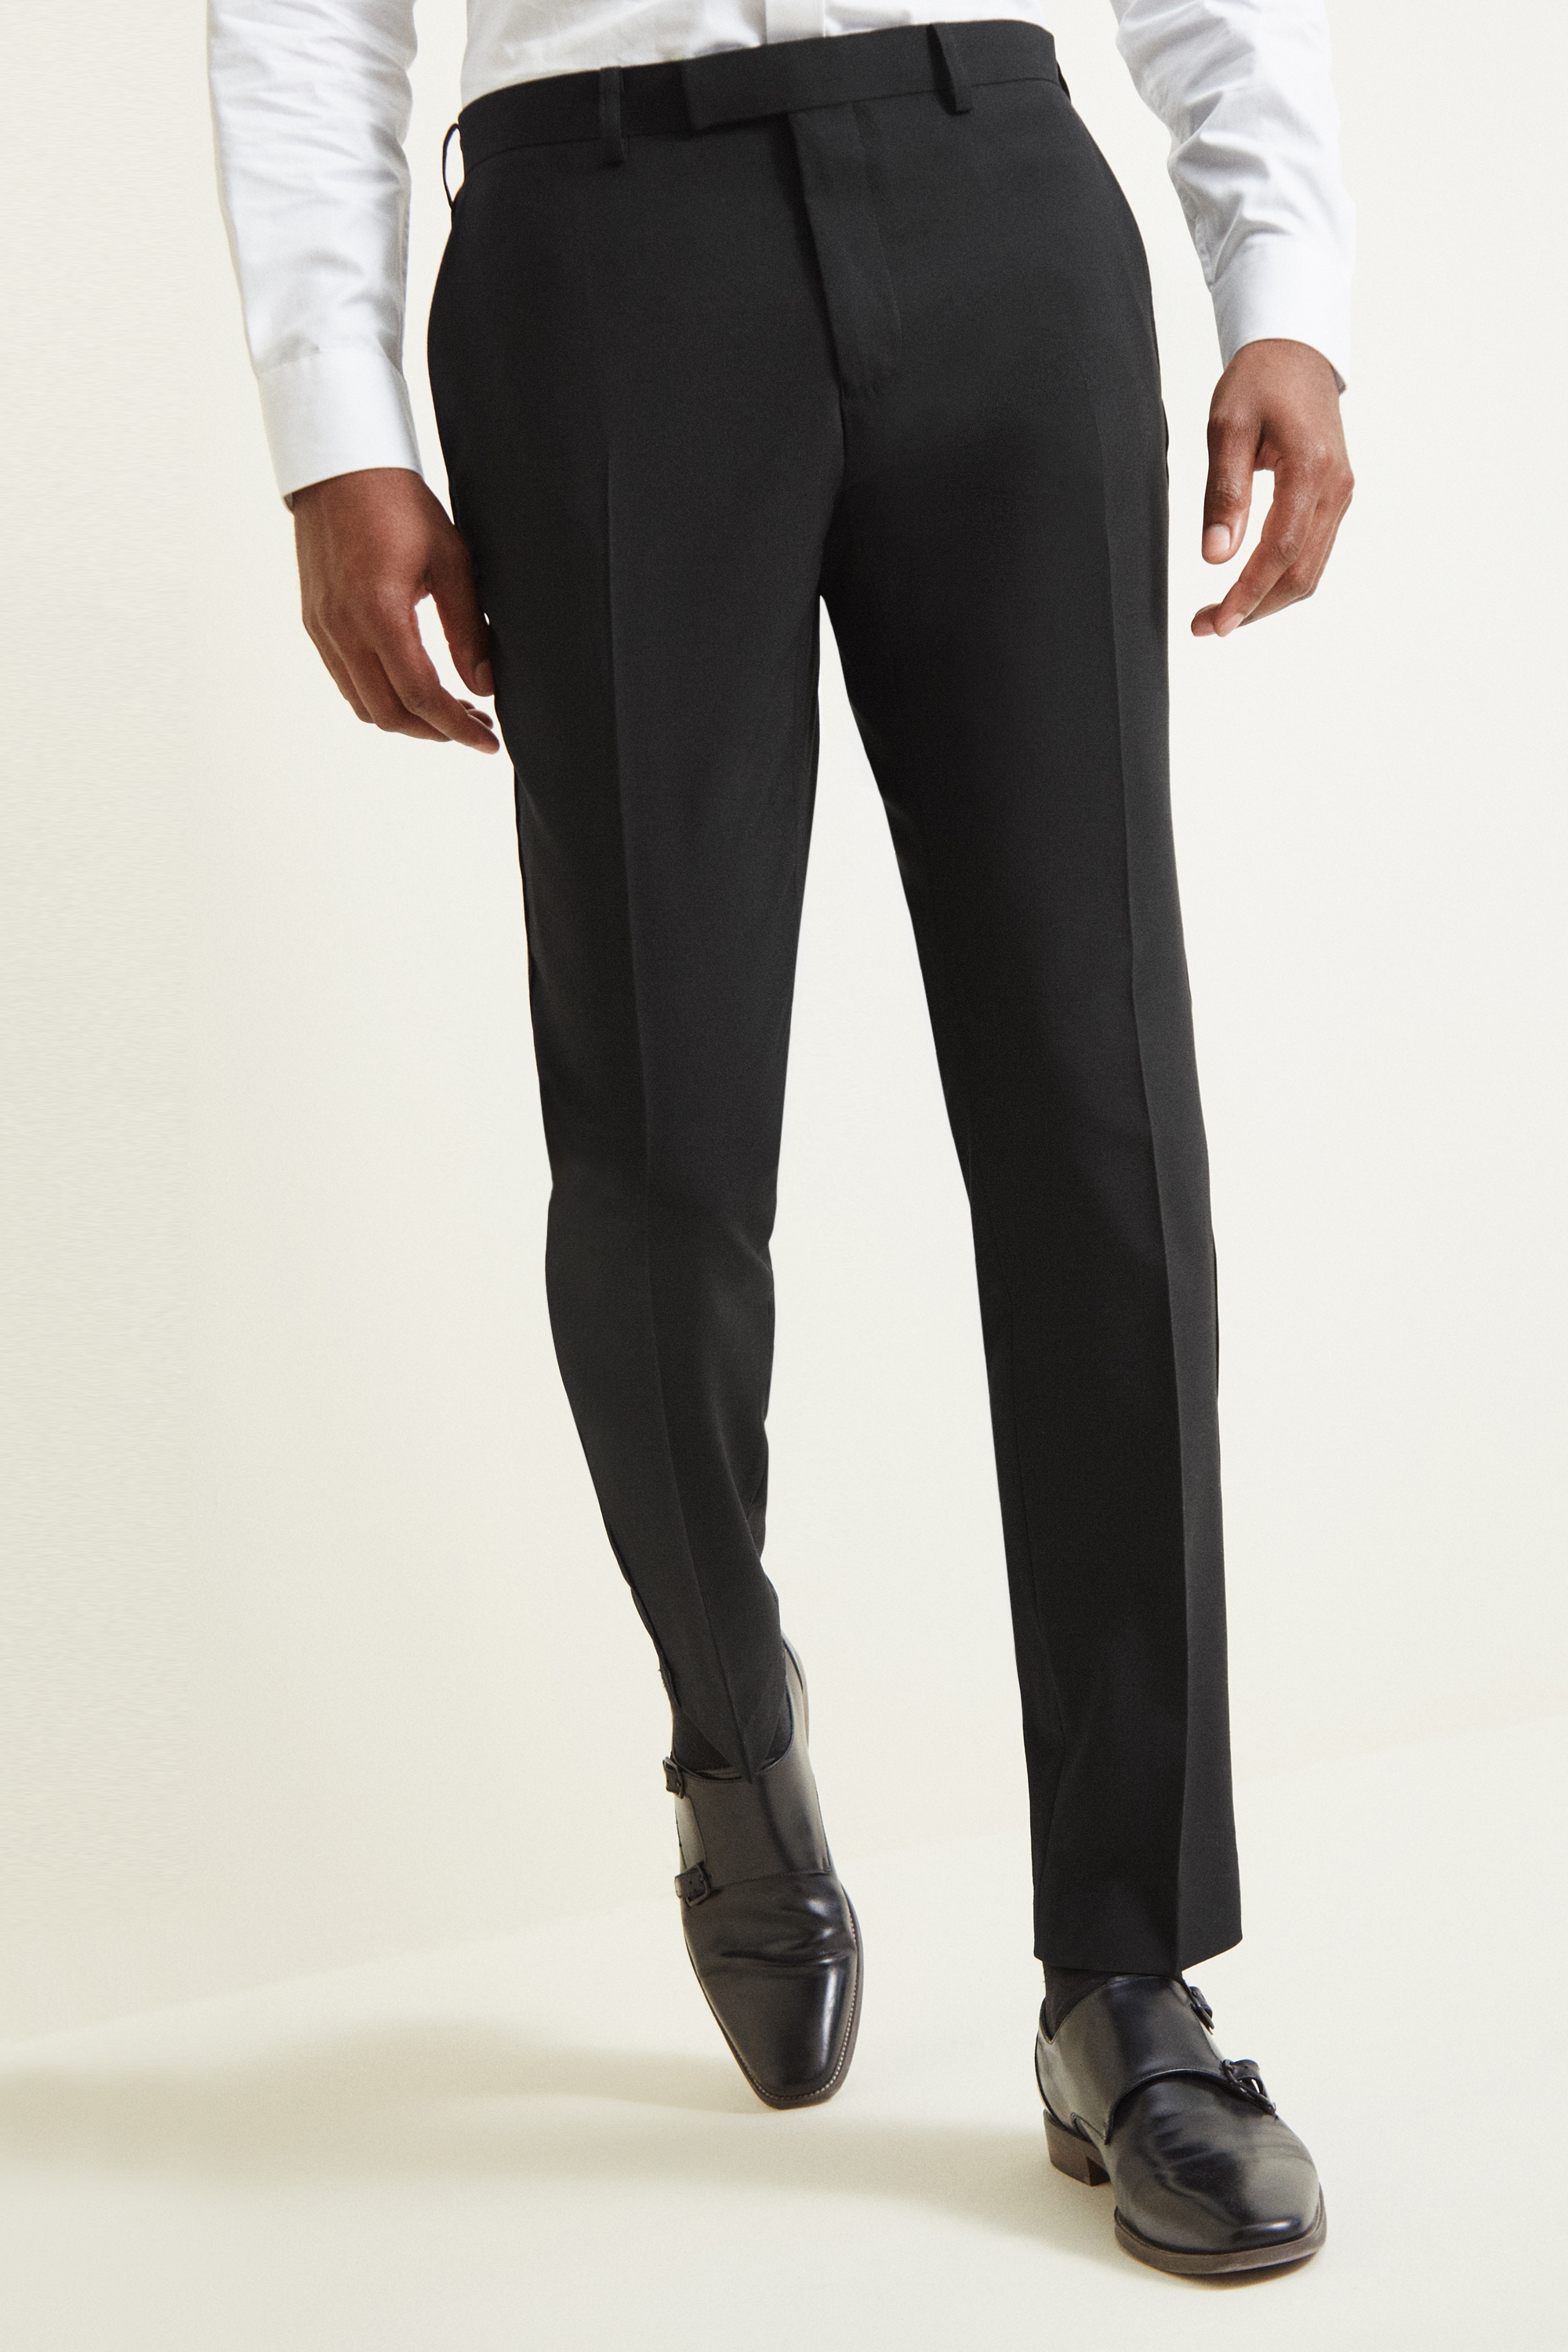 Mens Pants at Macy's come in all styles and sizes. Shop Men's Pants: Dress Pants, Chinos, Khakis, pants and more at Macy's!